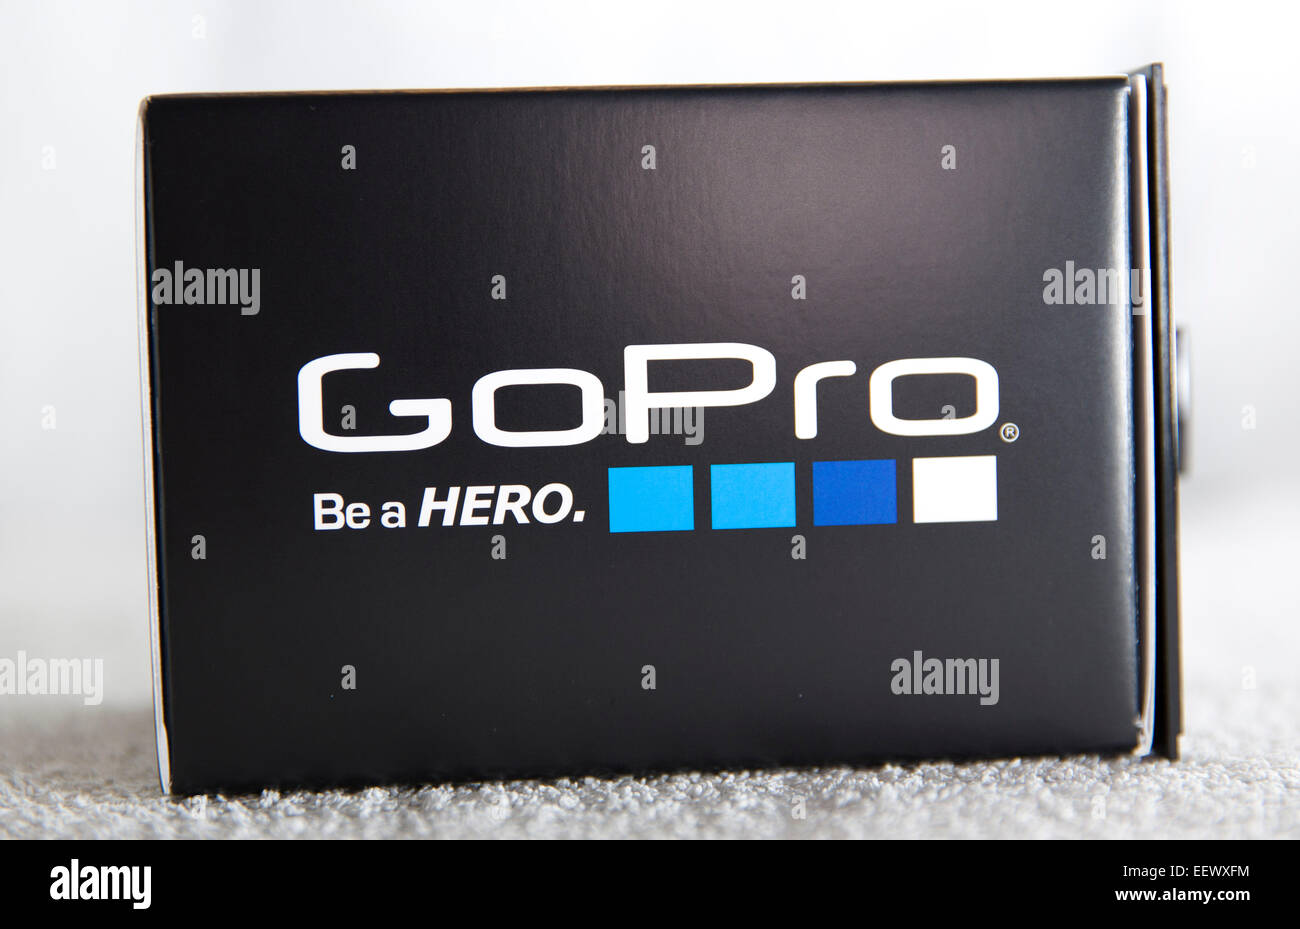 A GoPro Hero 4 Black edition box is pictured in a studio on a white background. - Stock Image